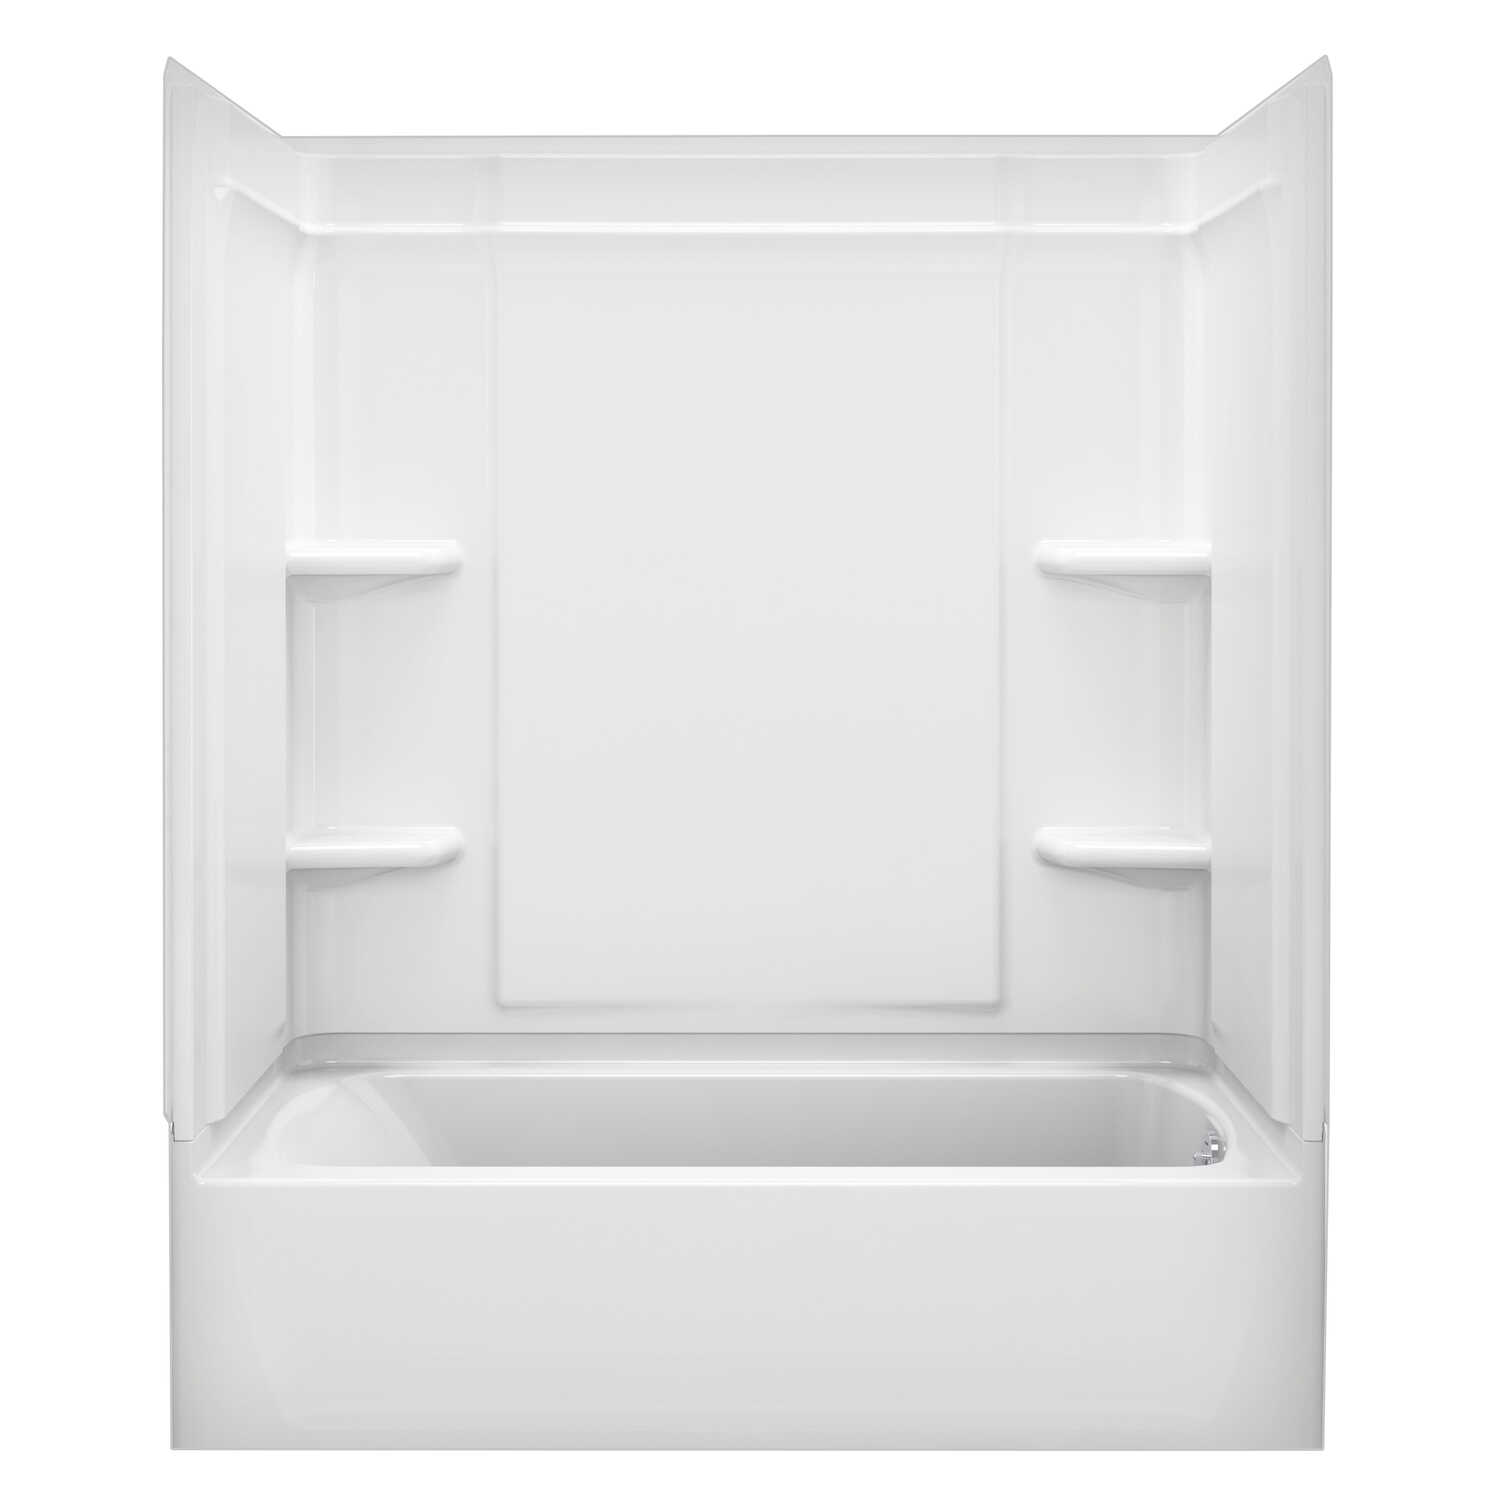 Sterling  Ensemble  73 in. H x 30 in. W x 60 in. L White  Bathtub Wall Surround  Three Piece  Revers